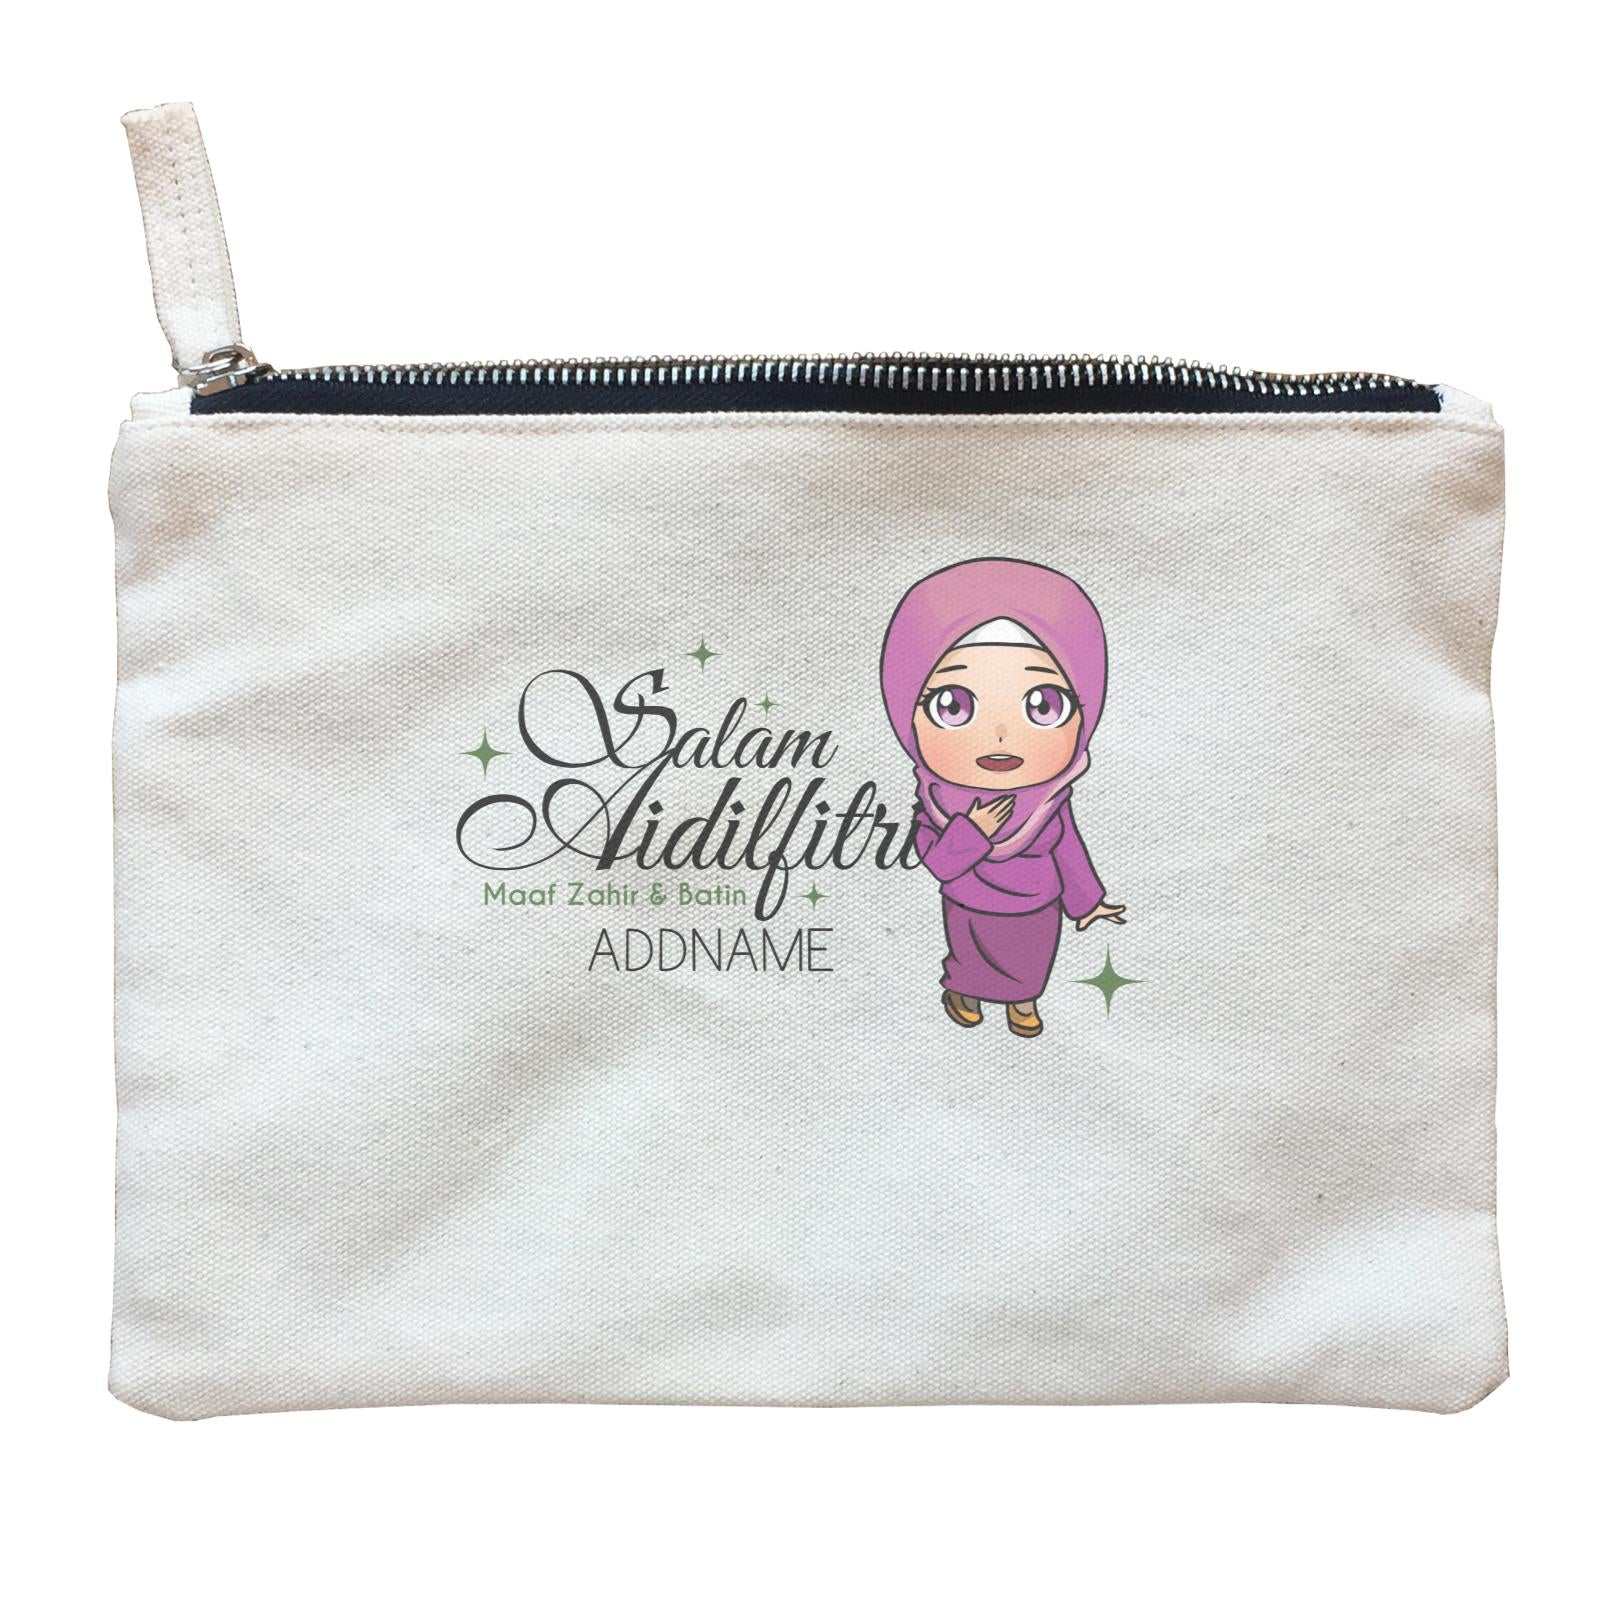 Raya Chibi Wishes Woman Addname Wishes Everyone Salam Aidilfitri Maaf Zahir & Batin Zipper Pouch